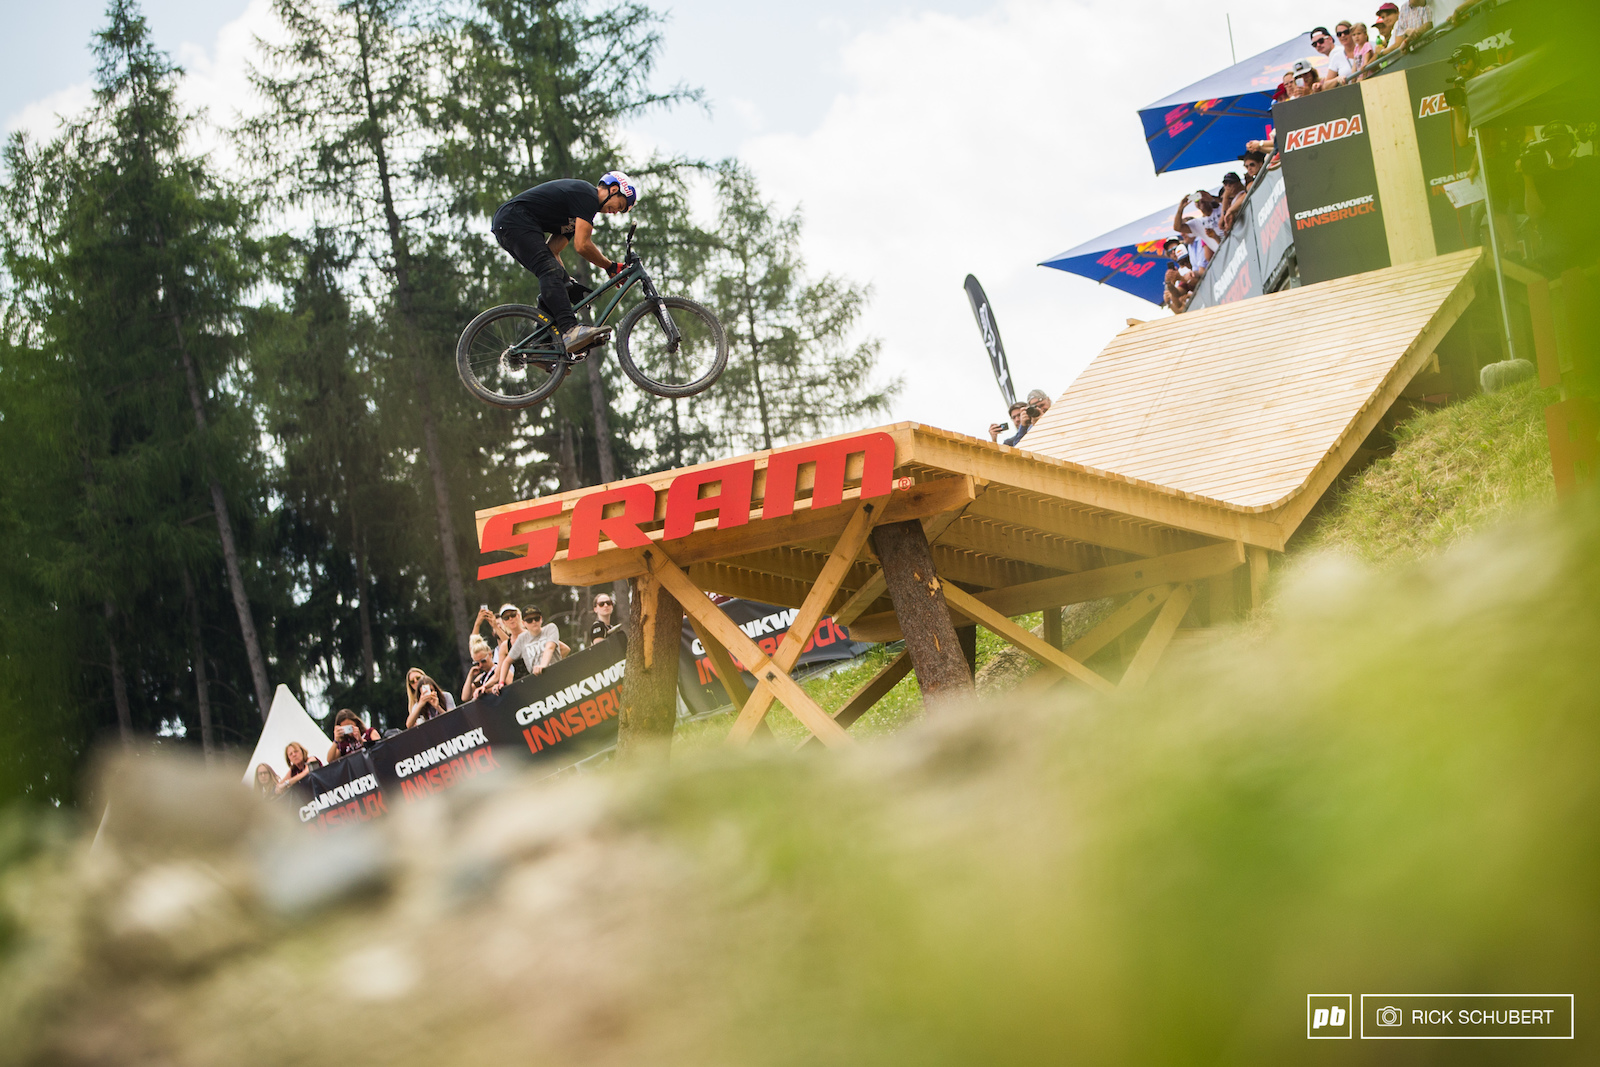 Szymon Godziek put together a crazy run starting things off with a truckdriver